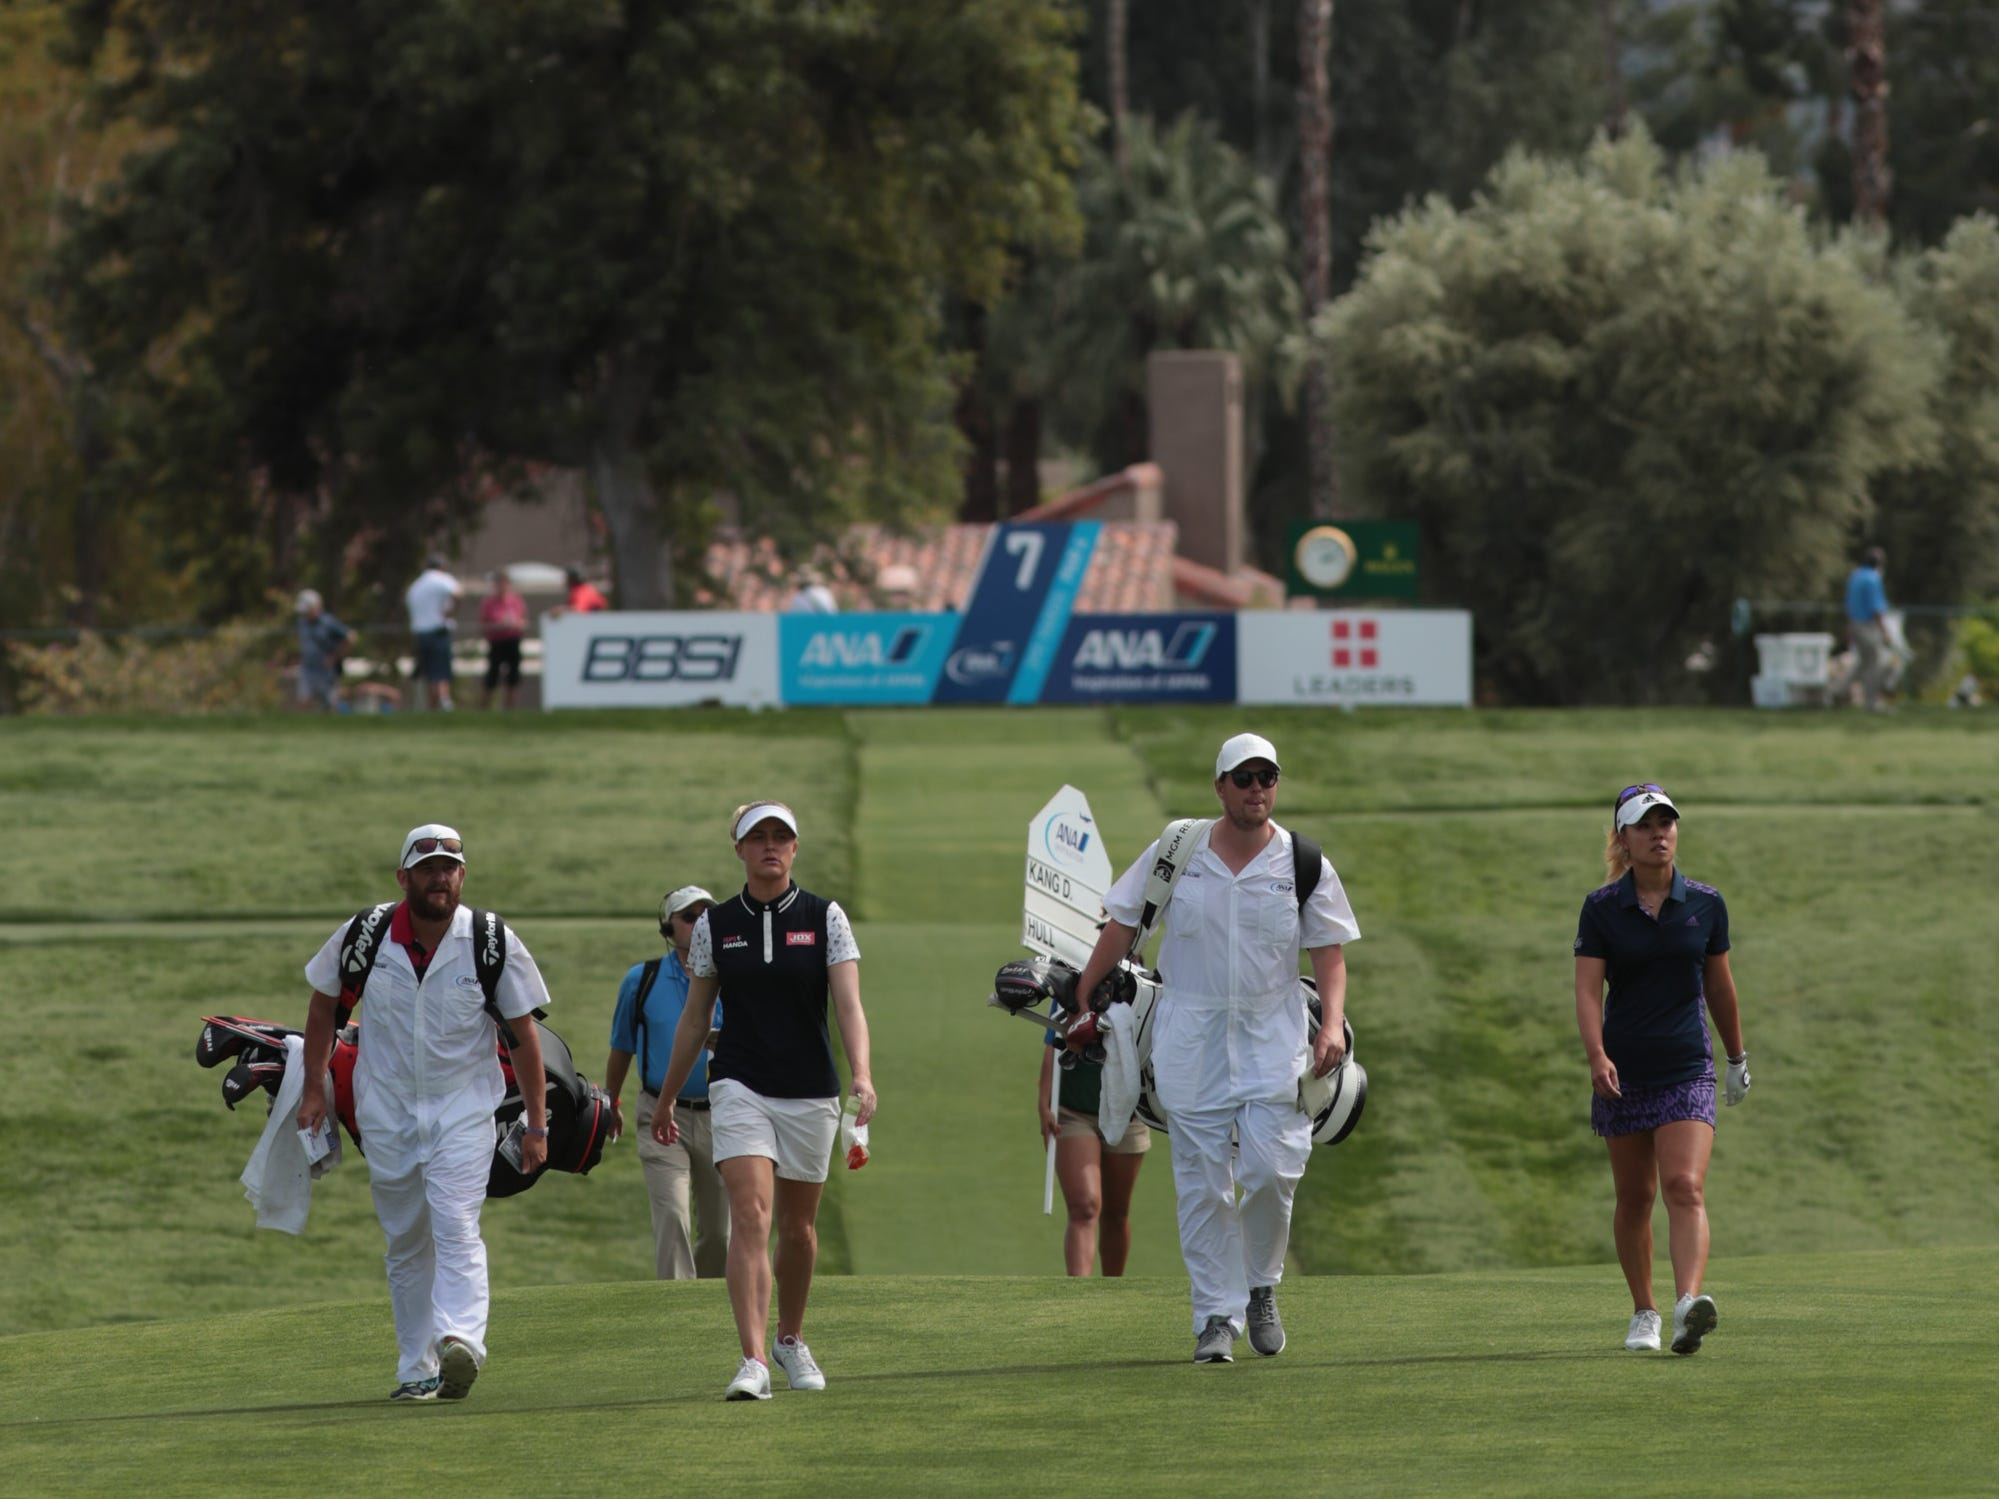 Danielle Kang, far right, and Charley Hull walk down the seventh hole of the Dinah Shore Course at the ANA Inspiration, Rancho Mirage, Calif., April 6, 2019.